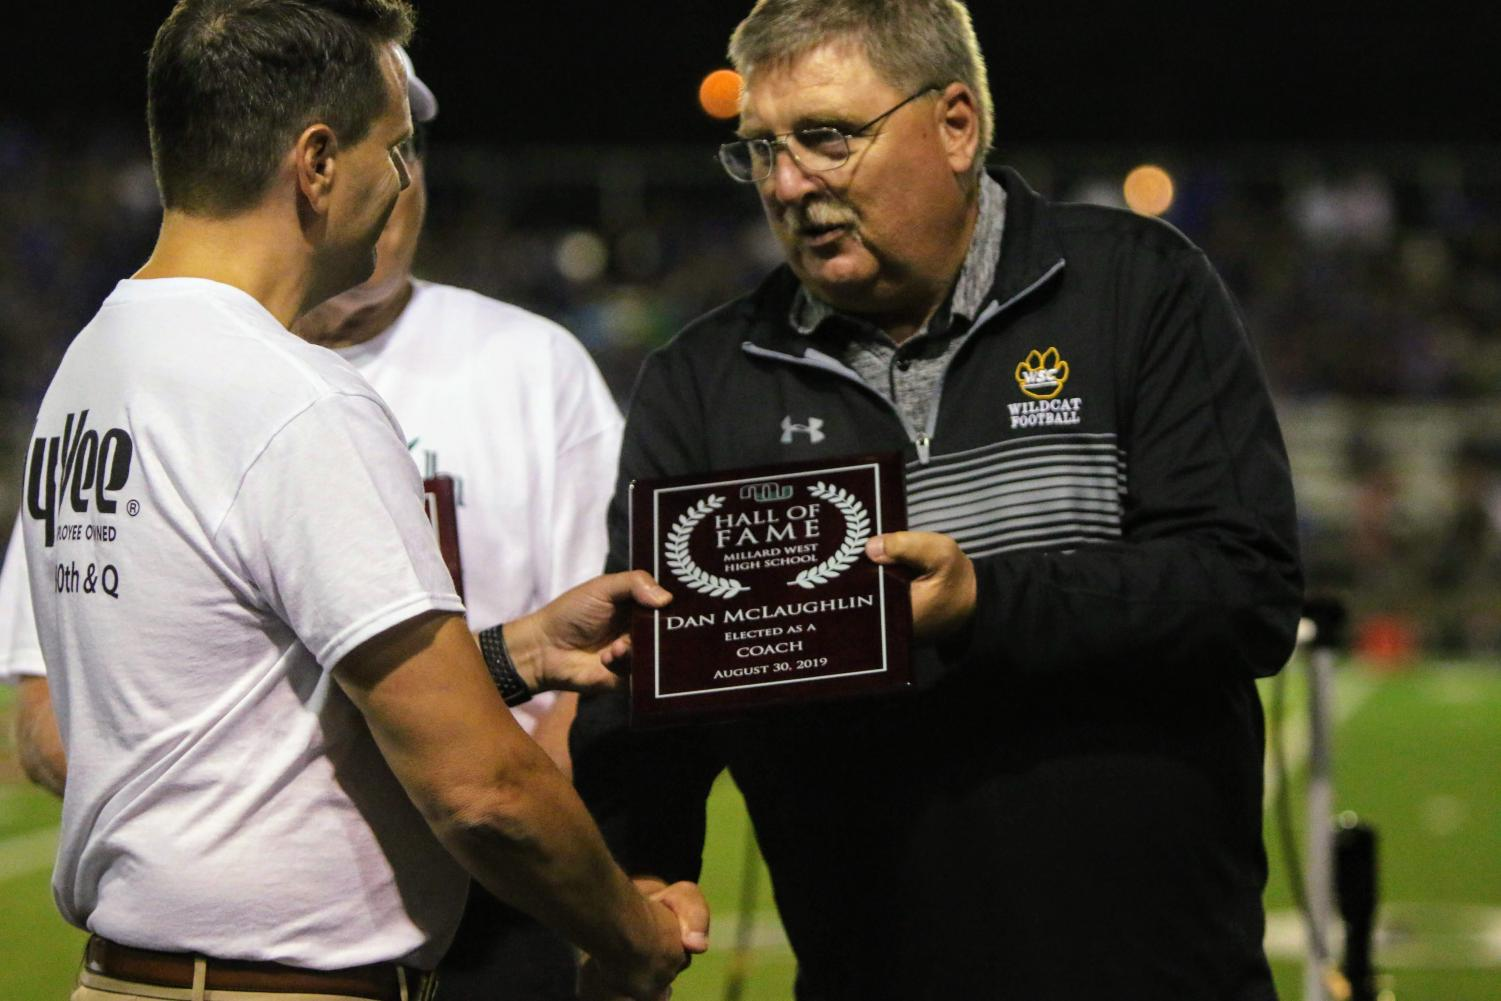 Dan+McLaughlin%2C+who+started+Millard+West%27s+football+program+in+1995%2C+was+inducted+into+the+Millard+West+Hall+of+Fame+on+Friday.+He+lead+the+wildcats+to+seven+playoff+appearances+and+the+2001+state+title.